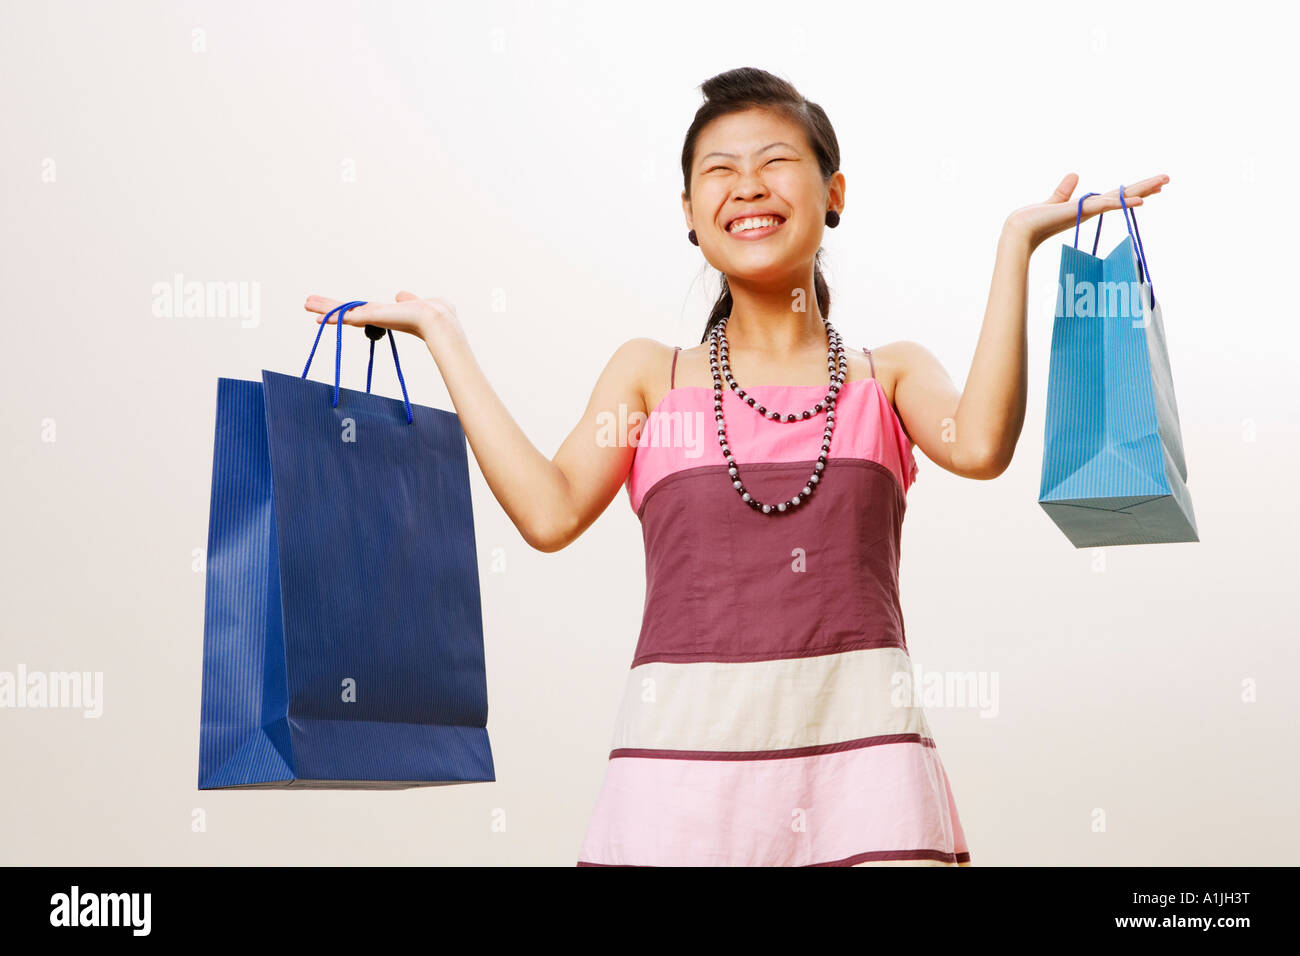 Young woman holding shopping bags with her eyes closed - Stock Image